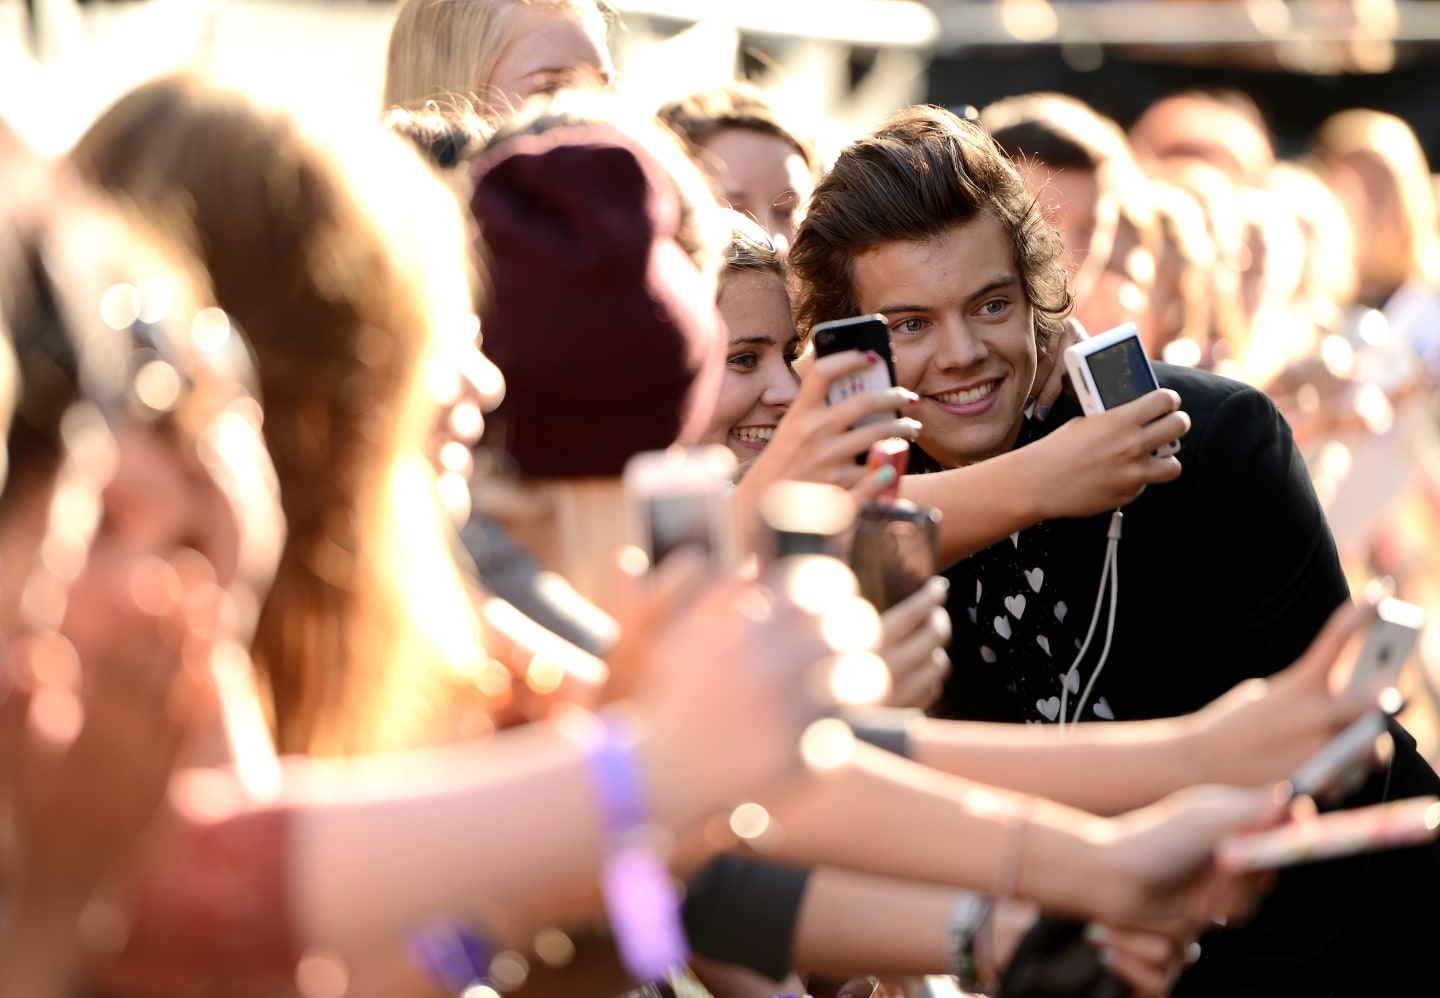 Fantasy, devotion, and a collapsed lung: On the passion of One Direction stans